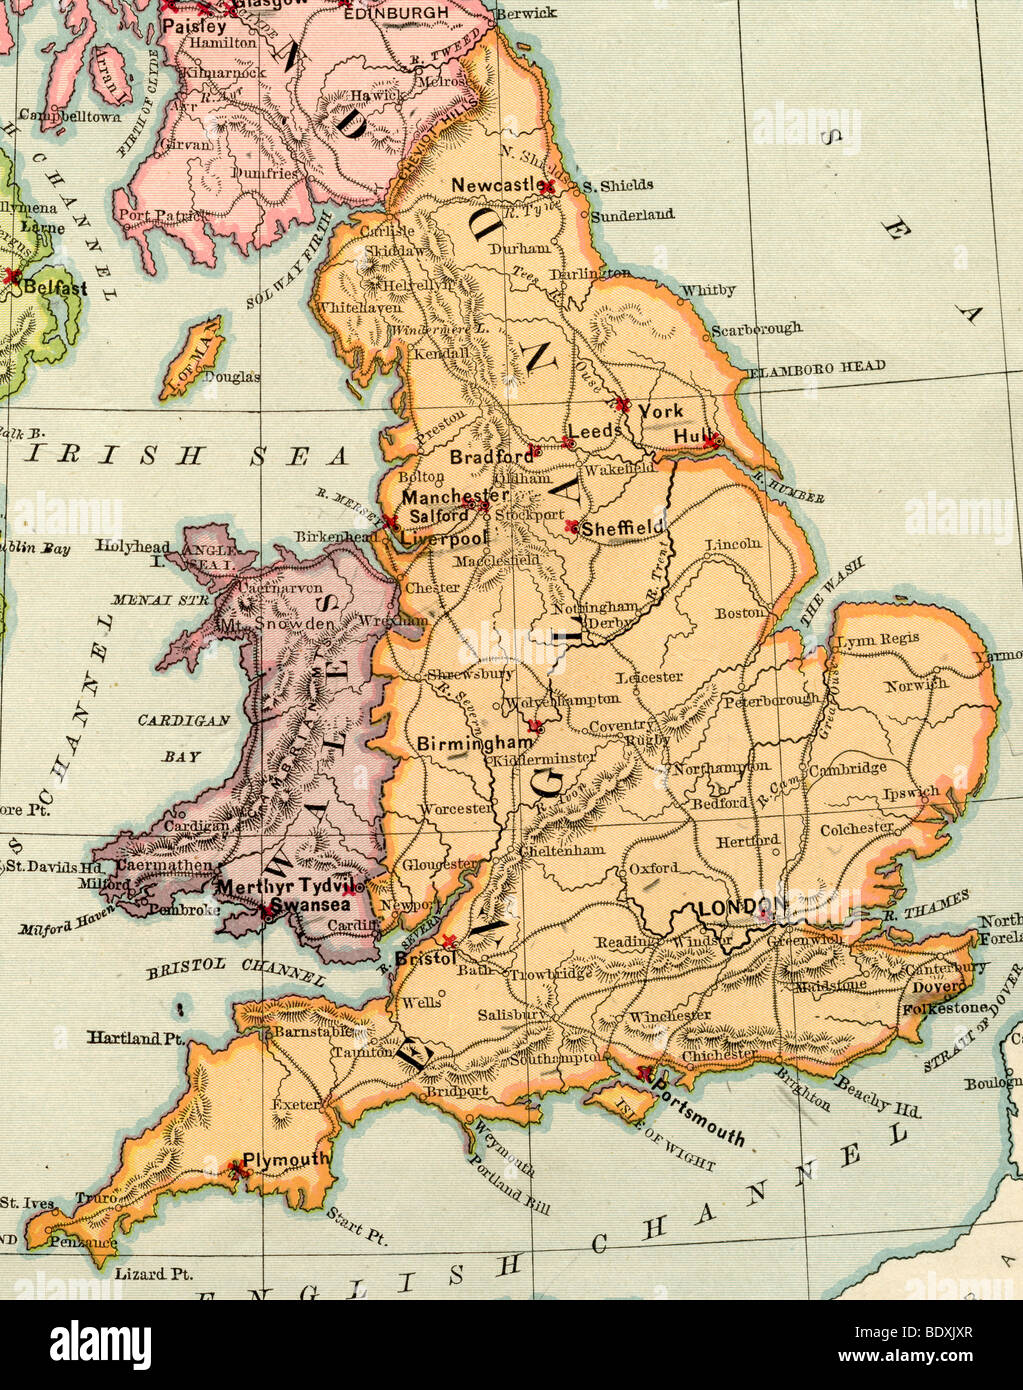 Map Of England And Wales.Original Old Map Of England And Wales From 1875 Geography Textbook